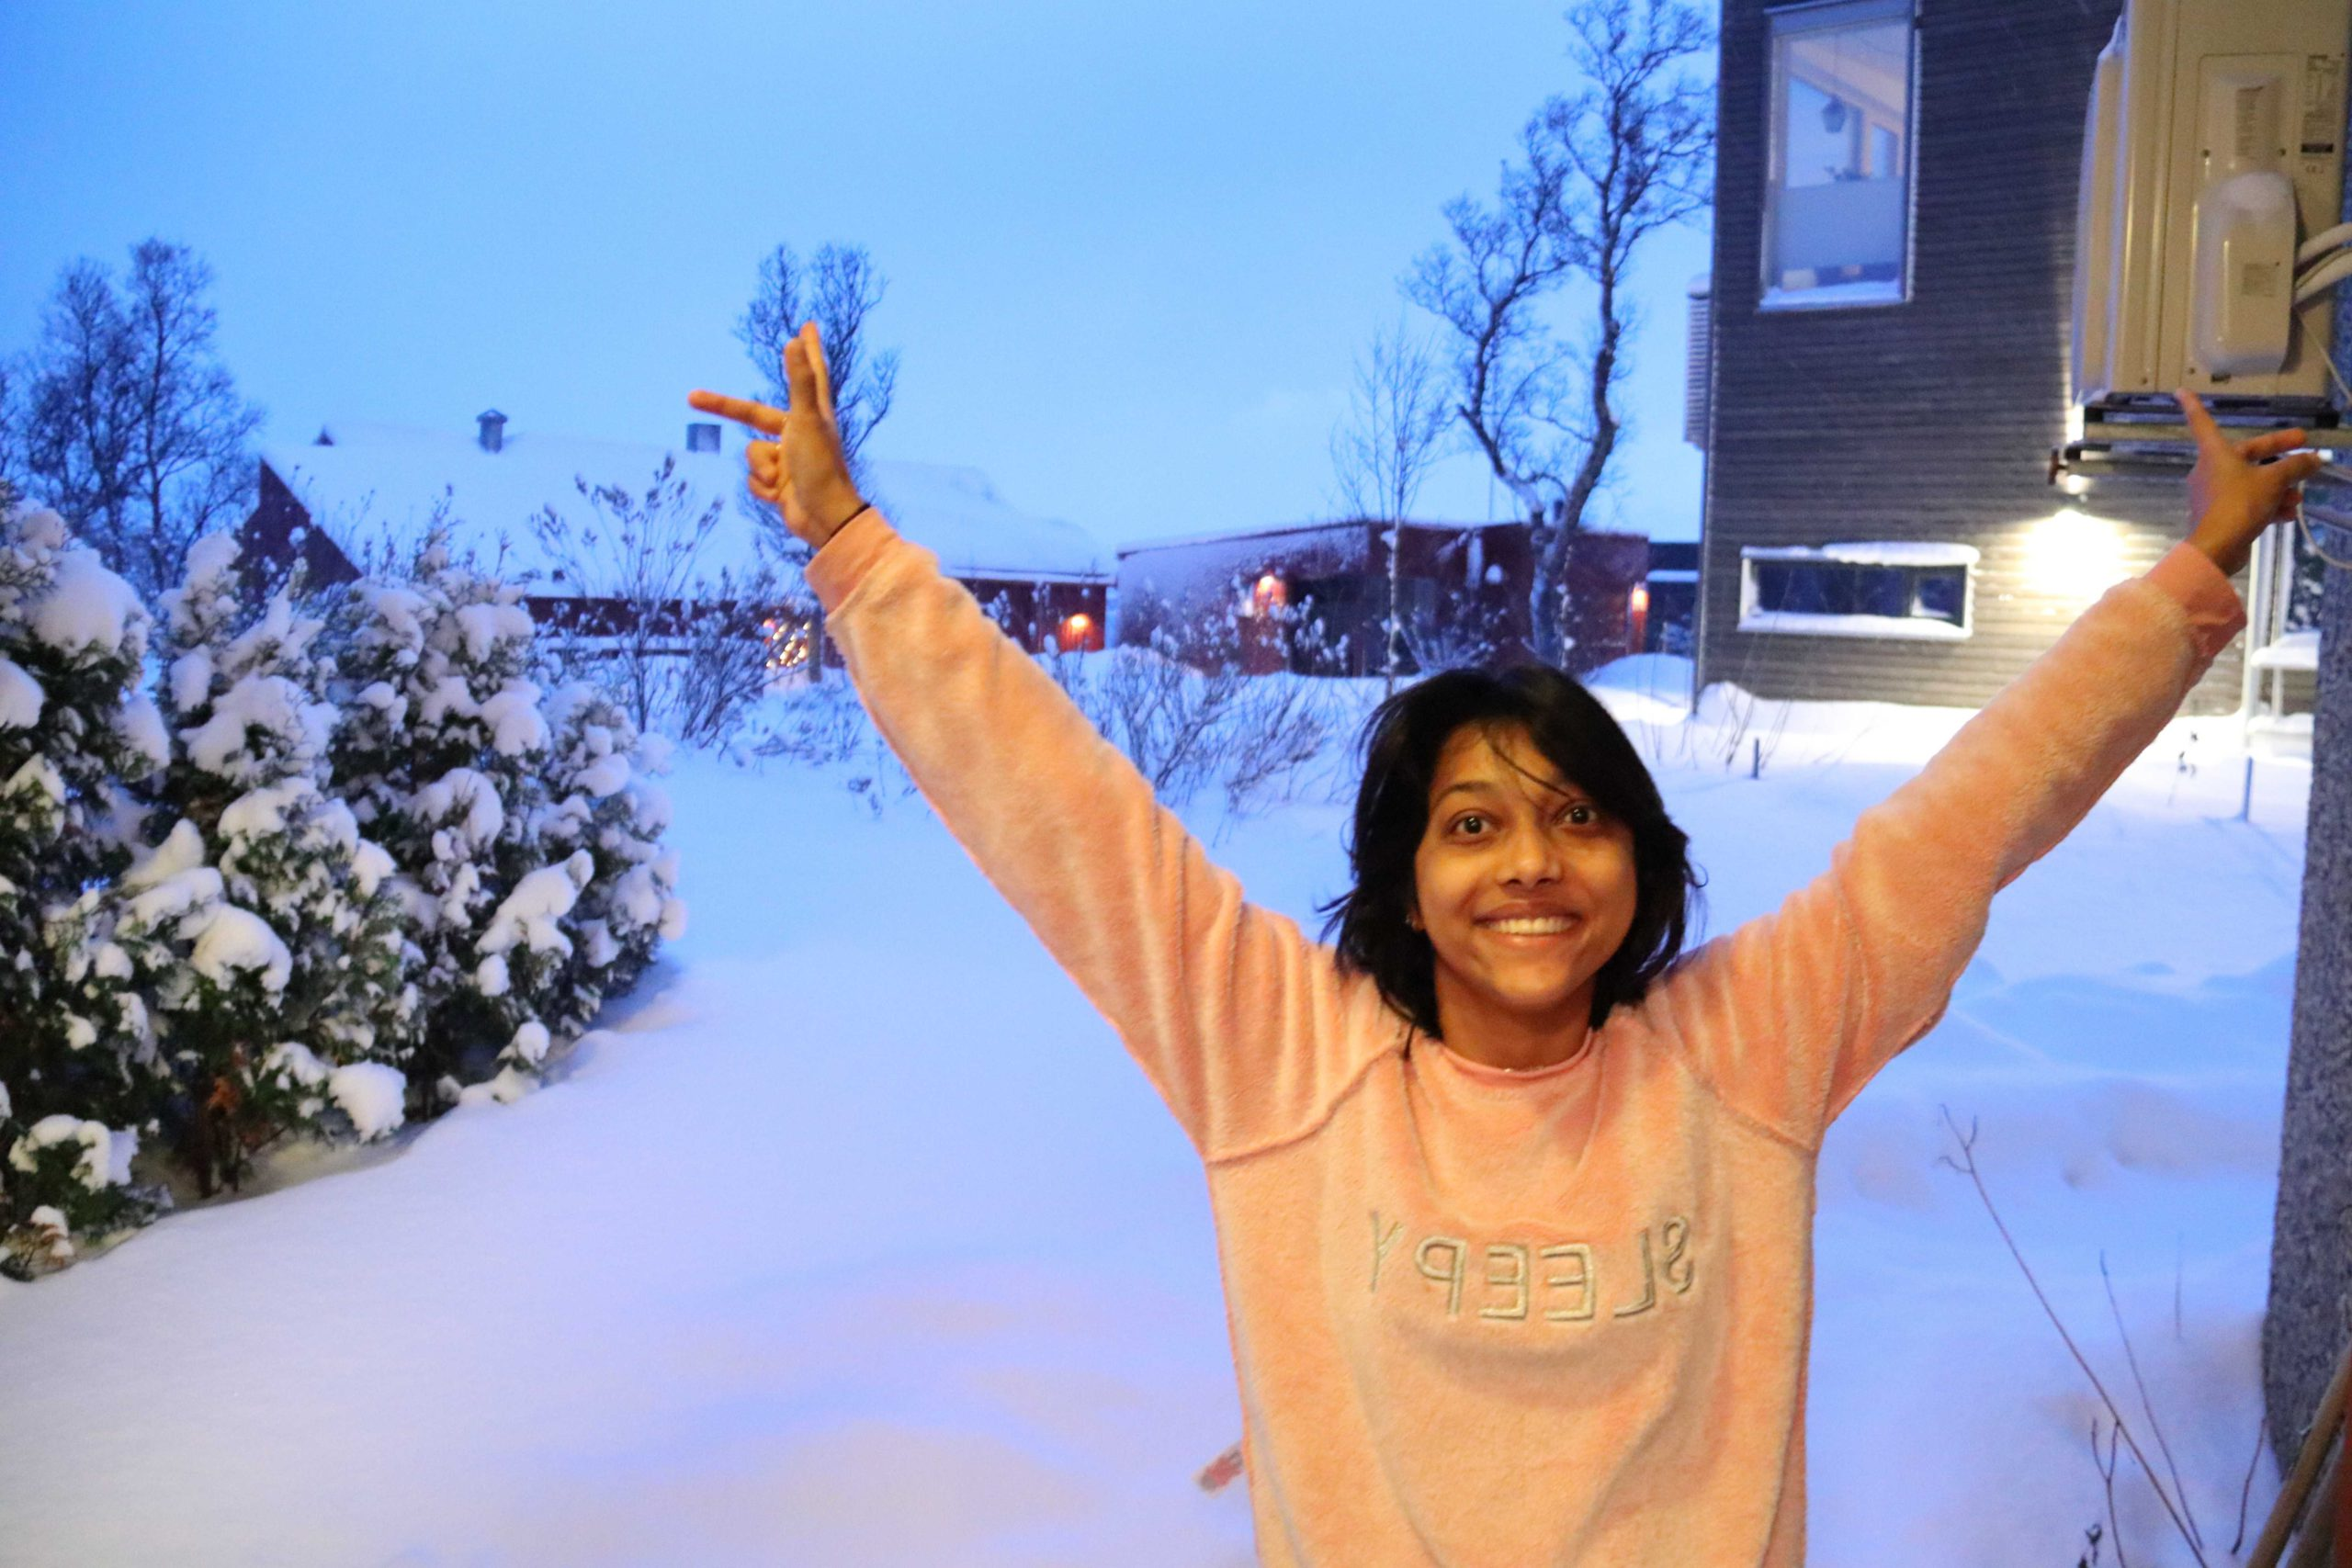 Yess I am in Tromso and Norwayyy moment, Tromso, Norway